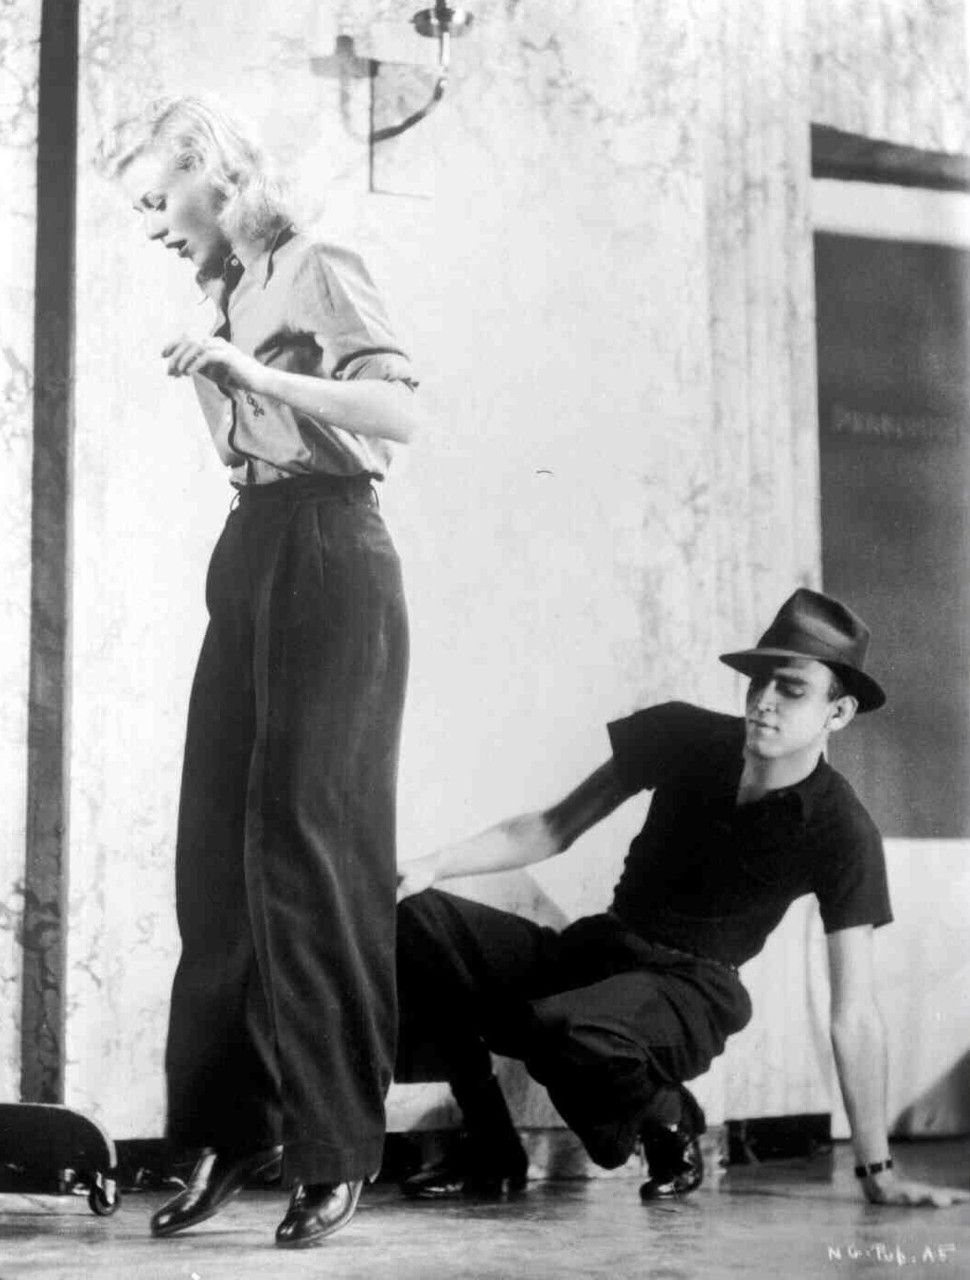 ginger rogers rehearsing with choreographer hermes pan for swing time, c. 1936